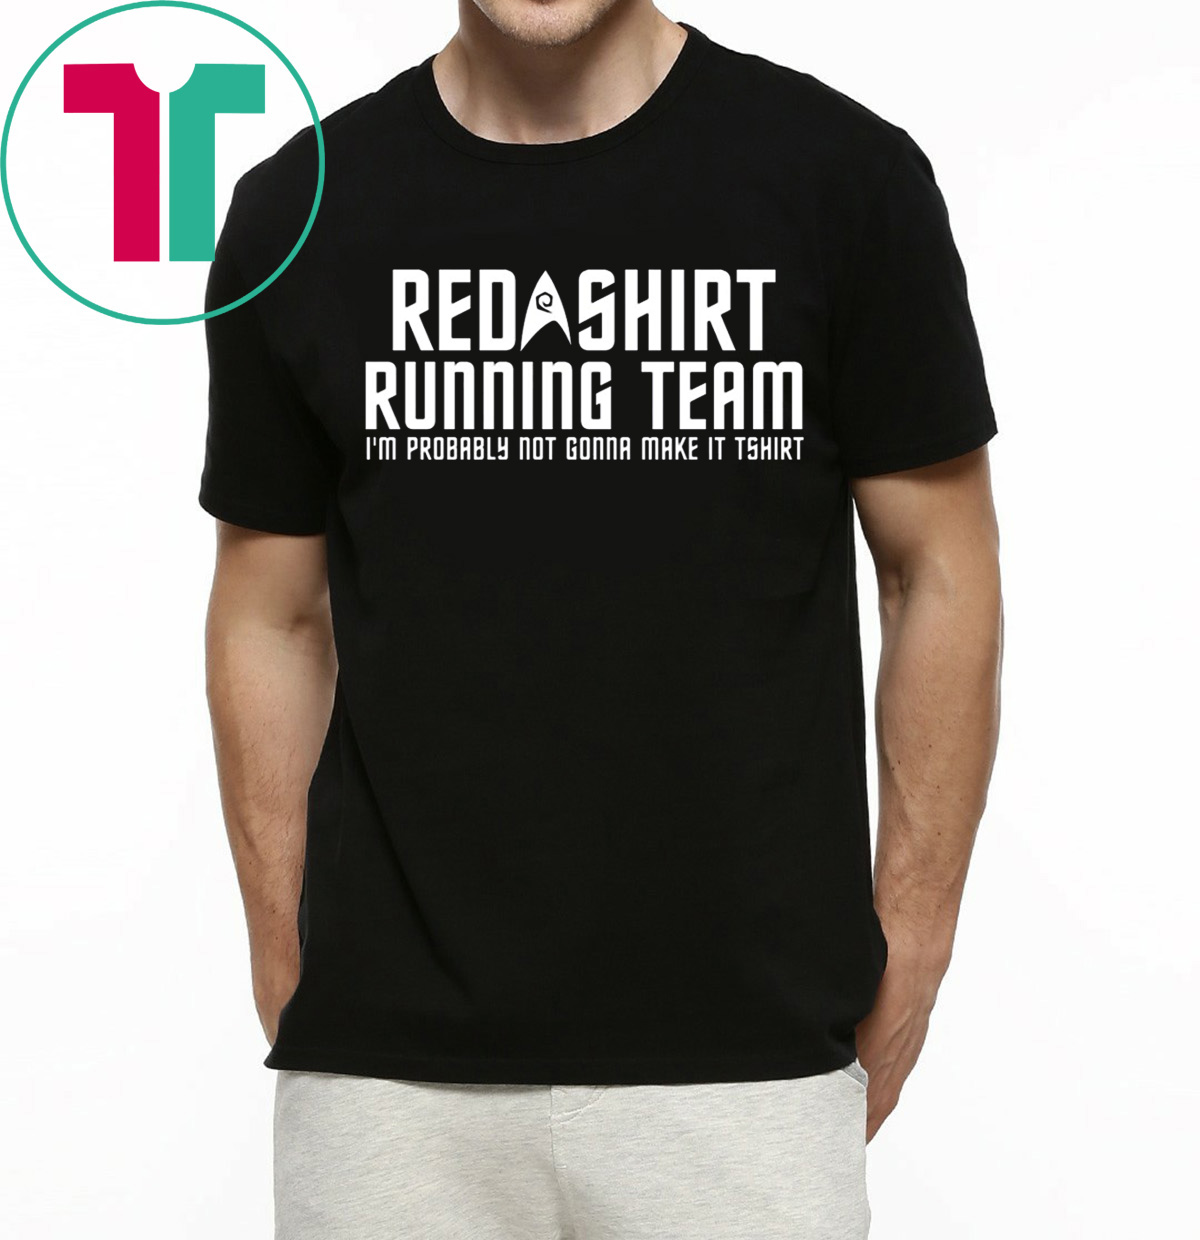 buy online 72564 e0c87 Red shirt running team I'm probably not gonna make it tee shirt